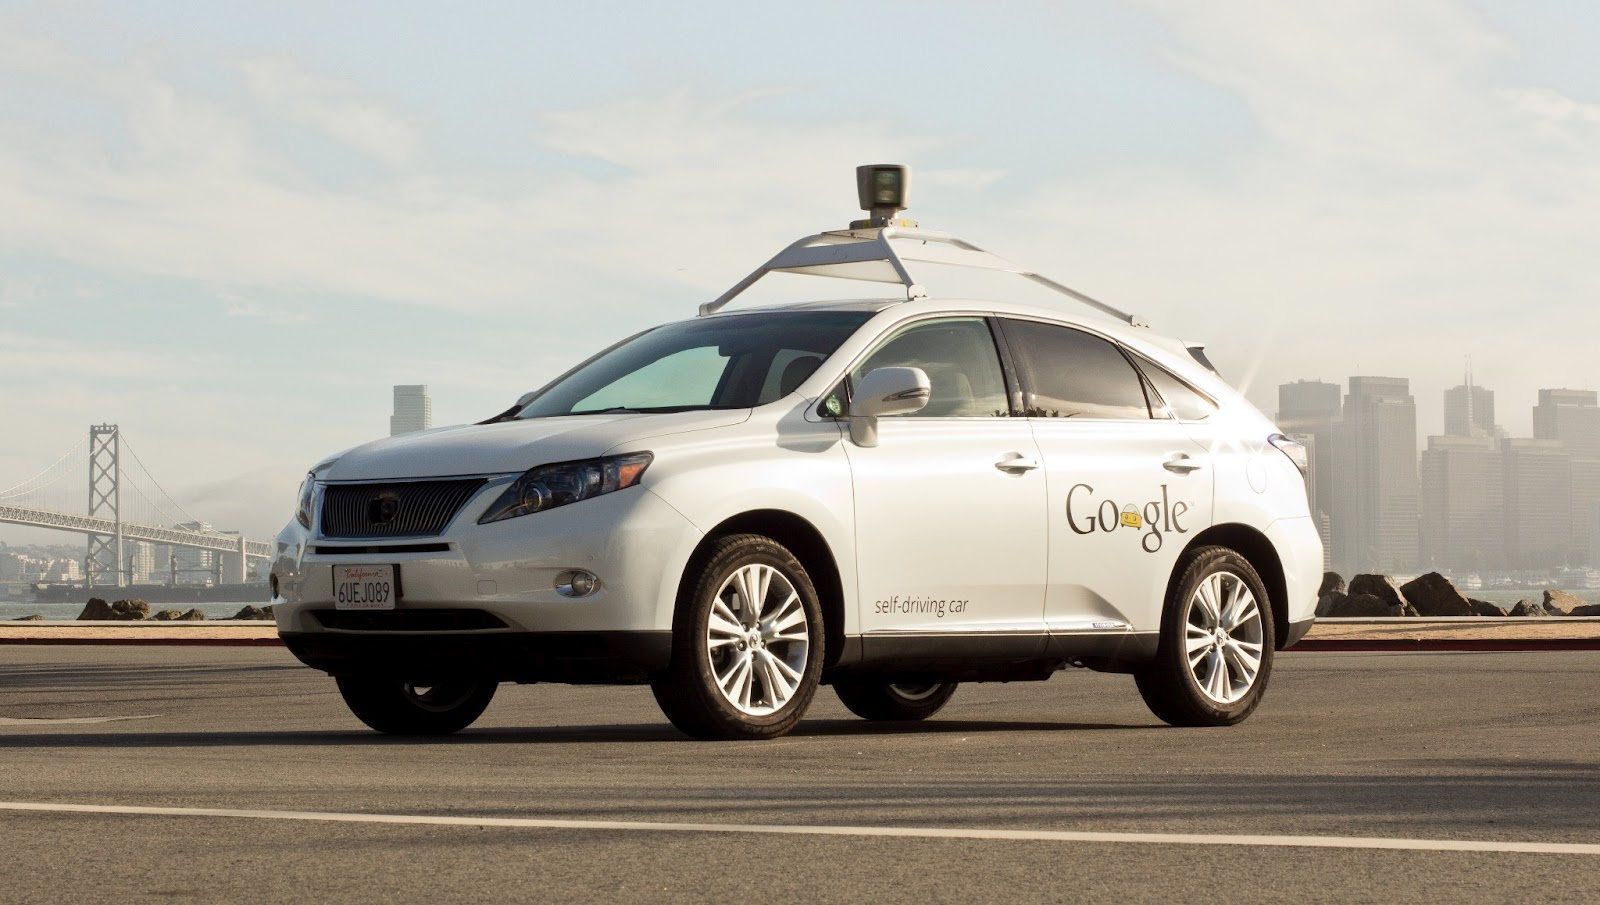 Google driverless cars complete 482,803 kms of testing